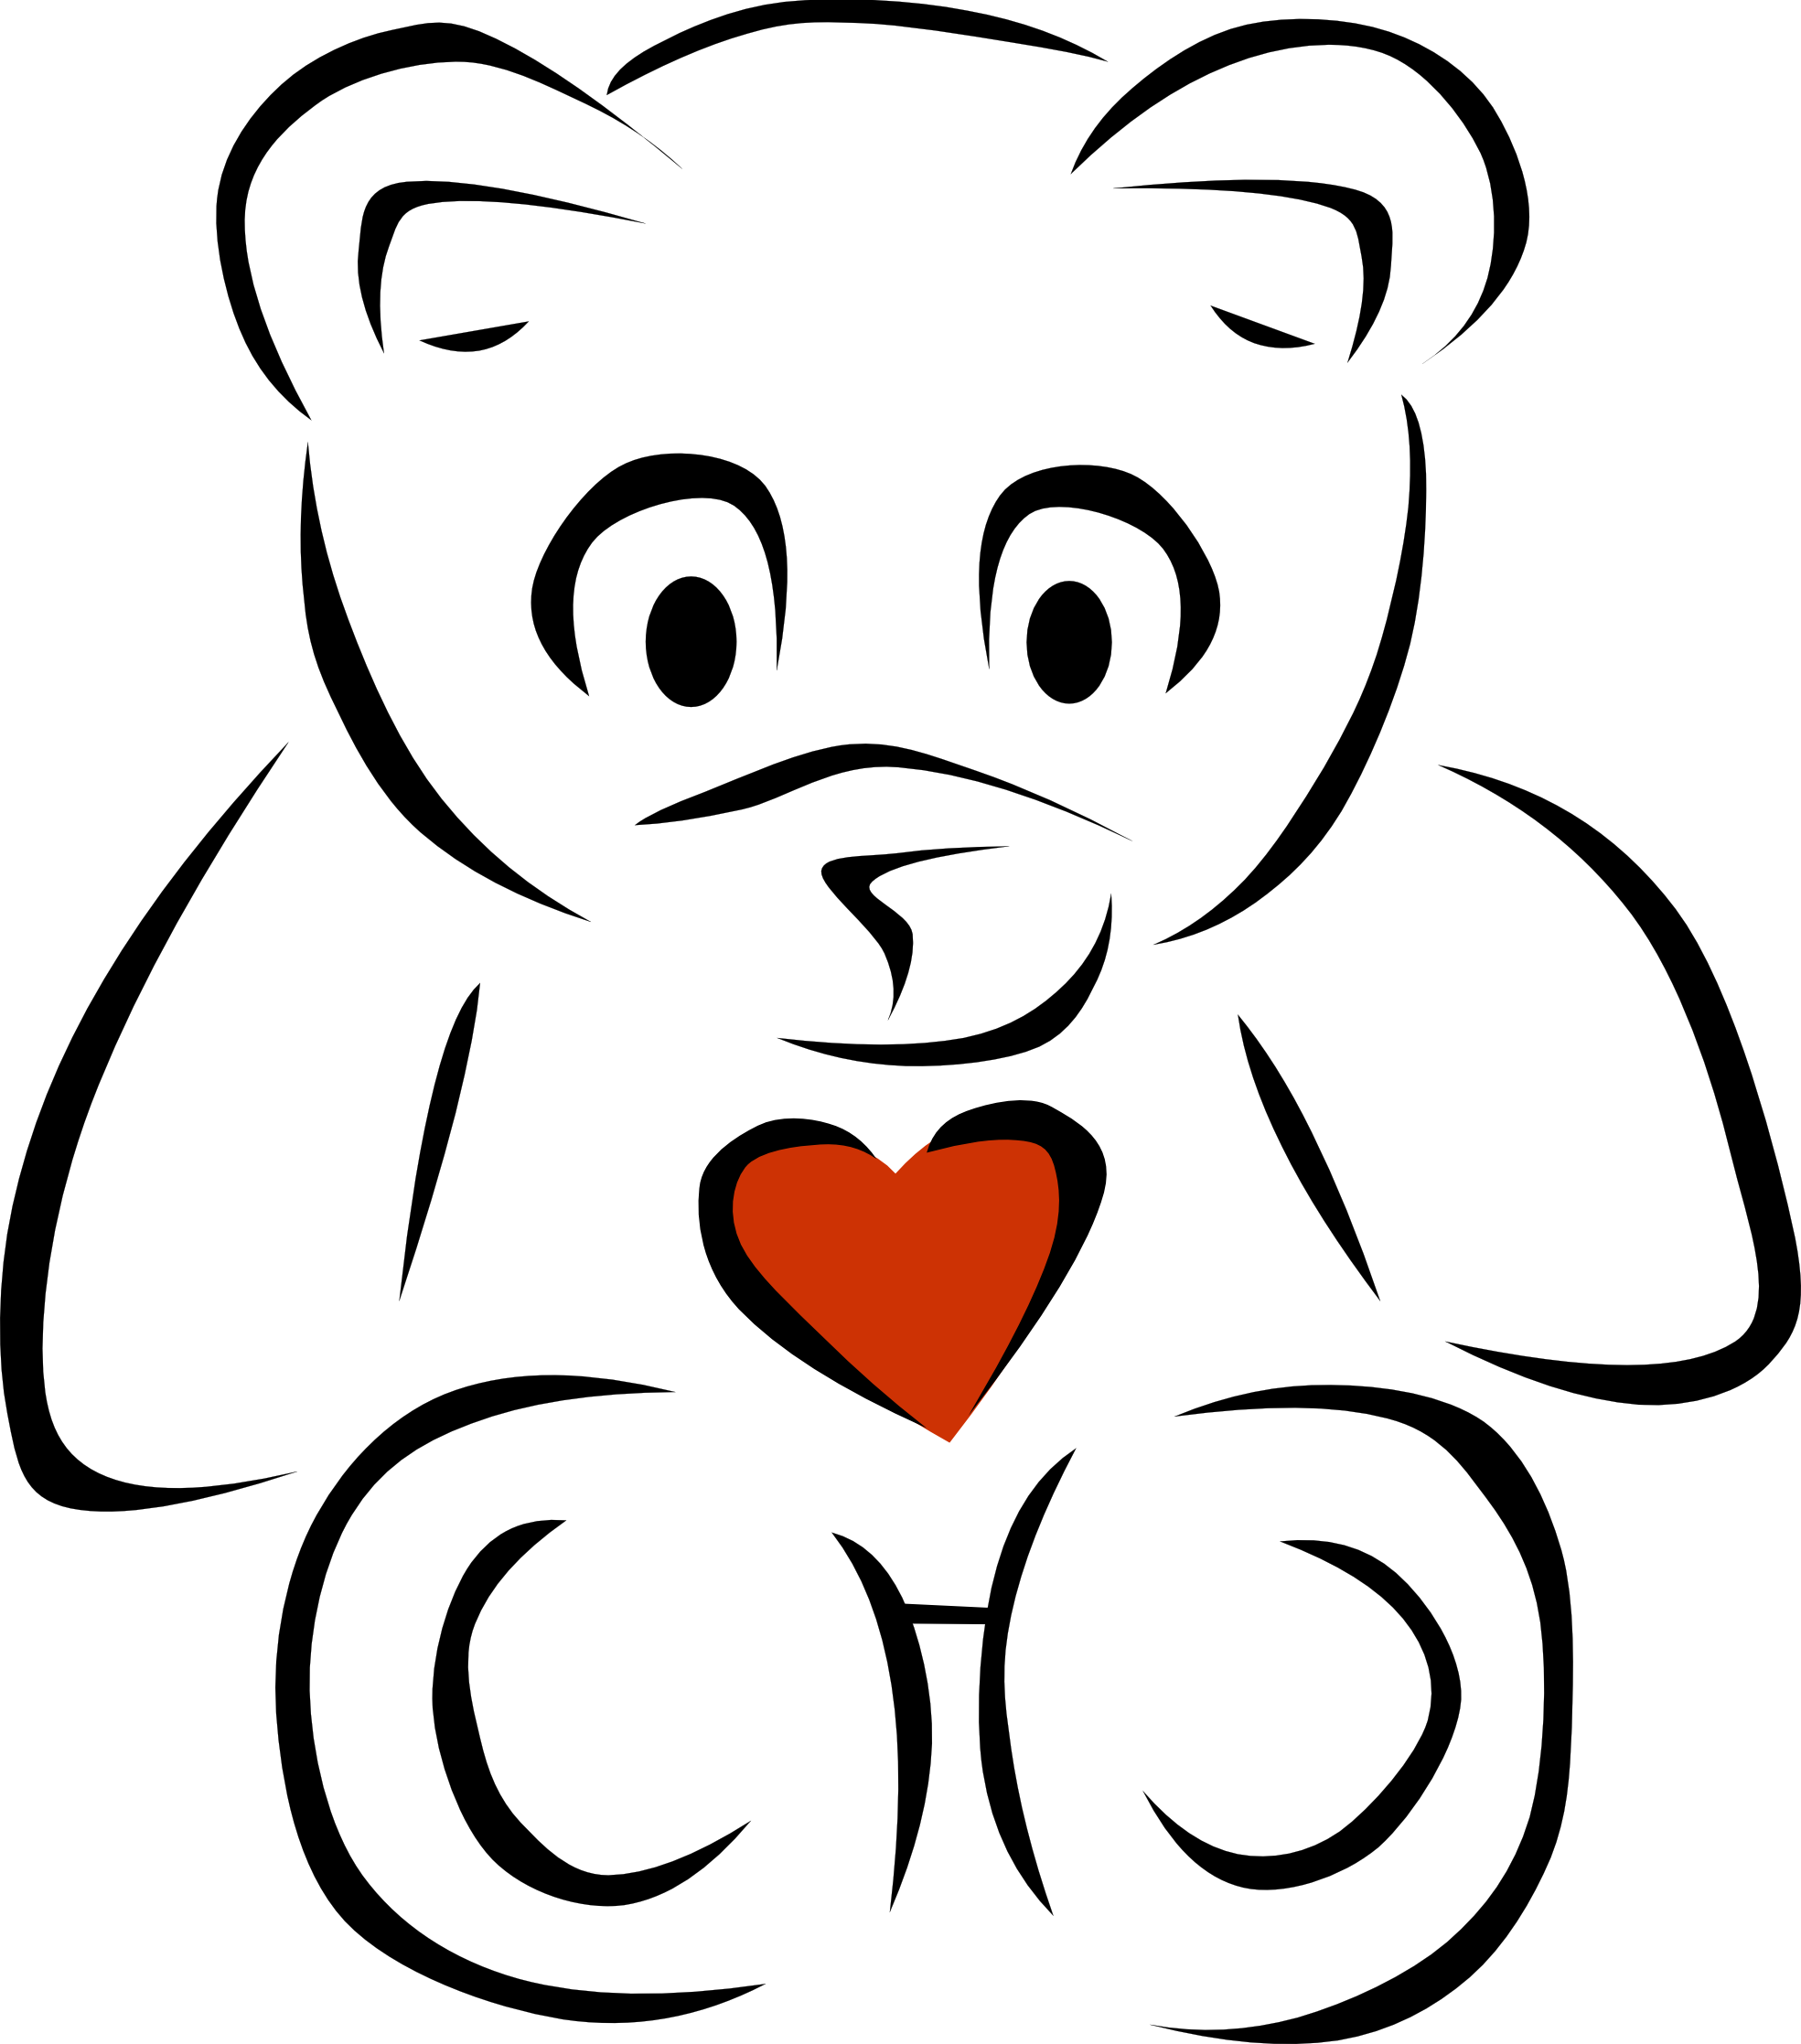 jpg free library Panda bear clipart black and white. Cute free images heartborderclipartblackandwhite